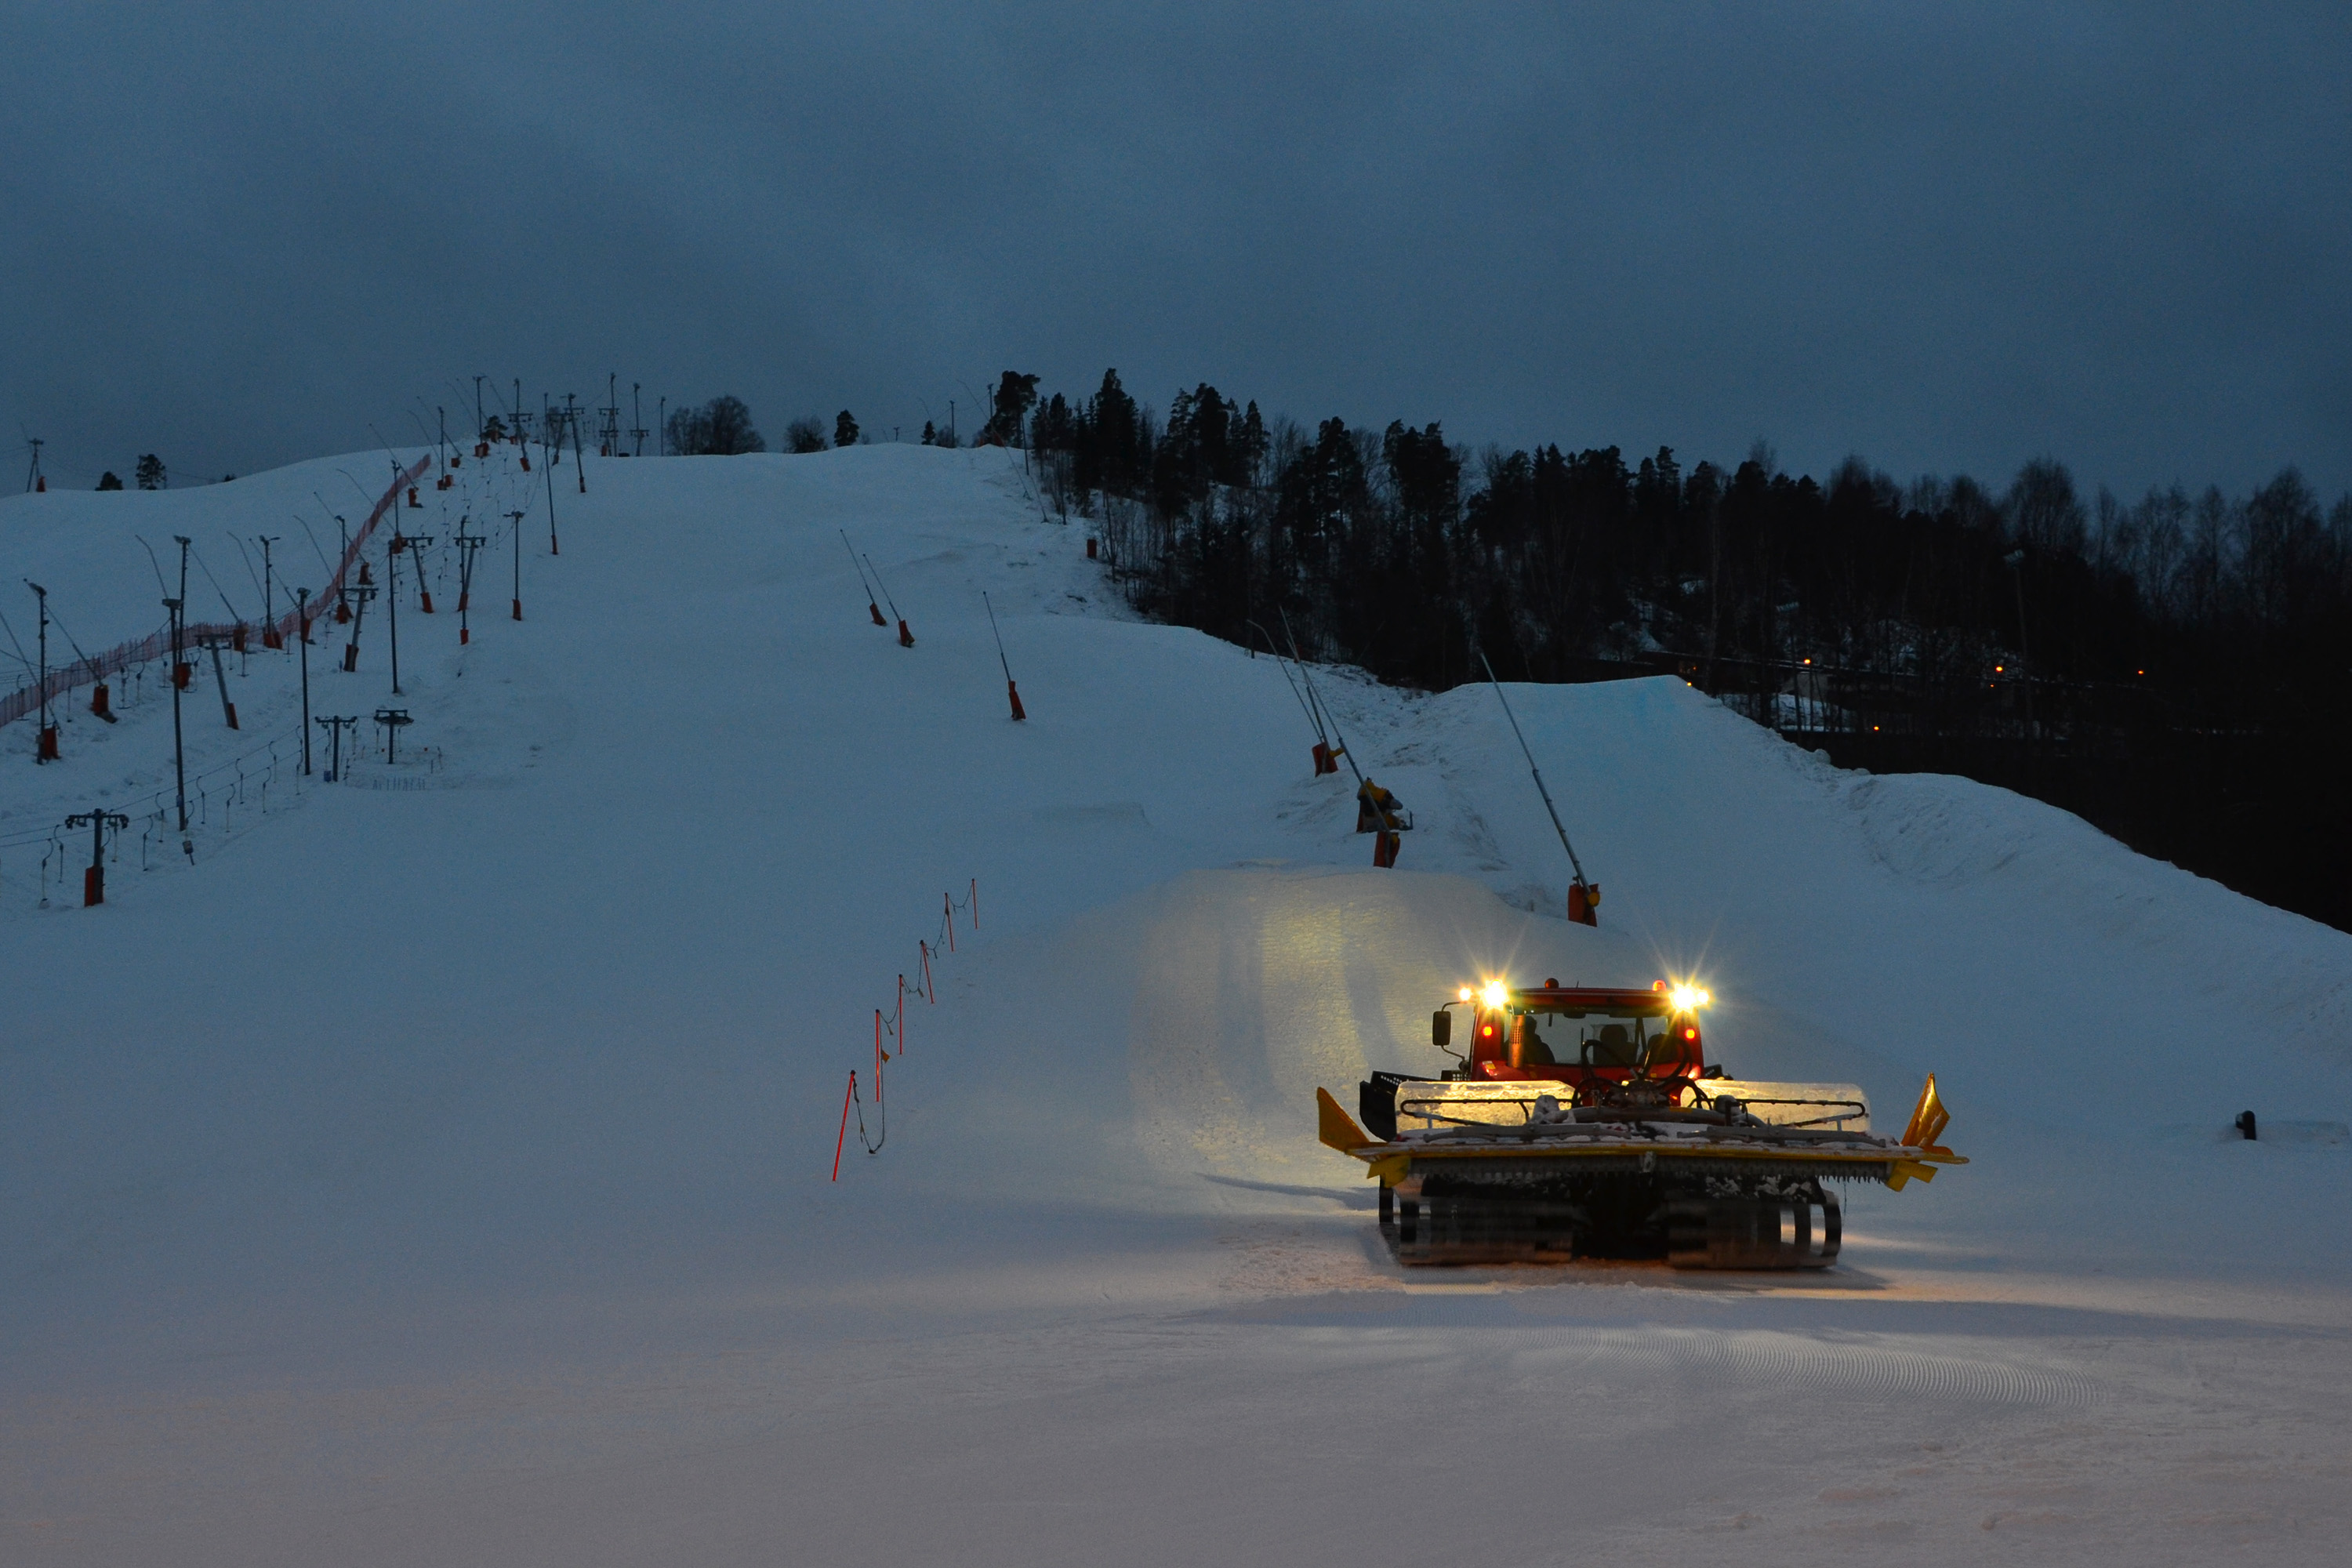 Snow tractor, Alpine, Technic, Skiing, Skislope, HQ Photo